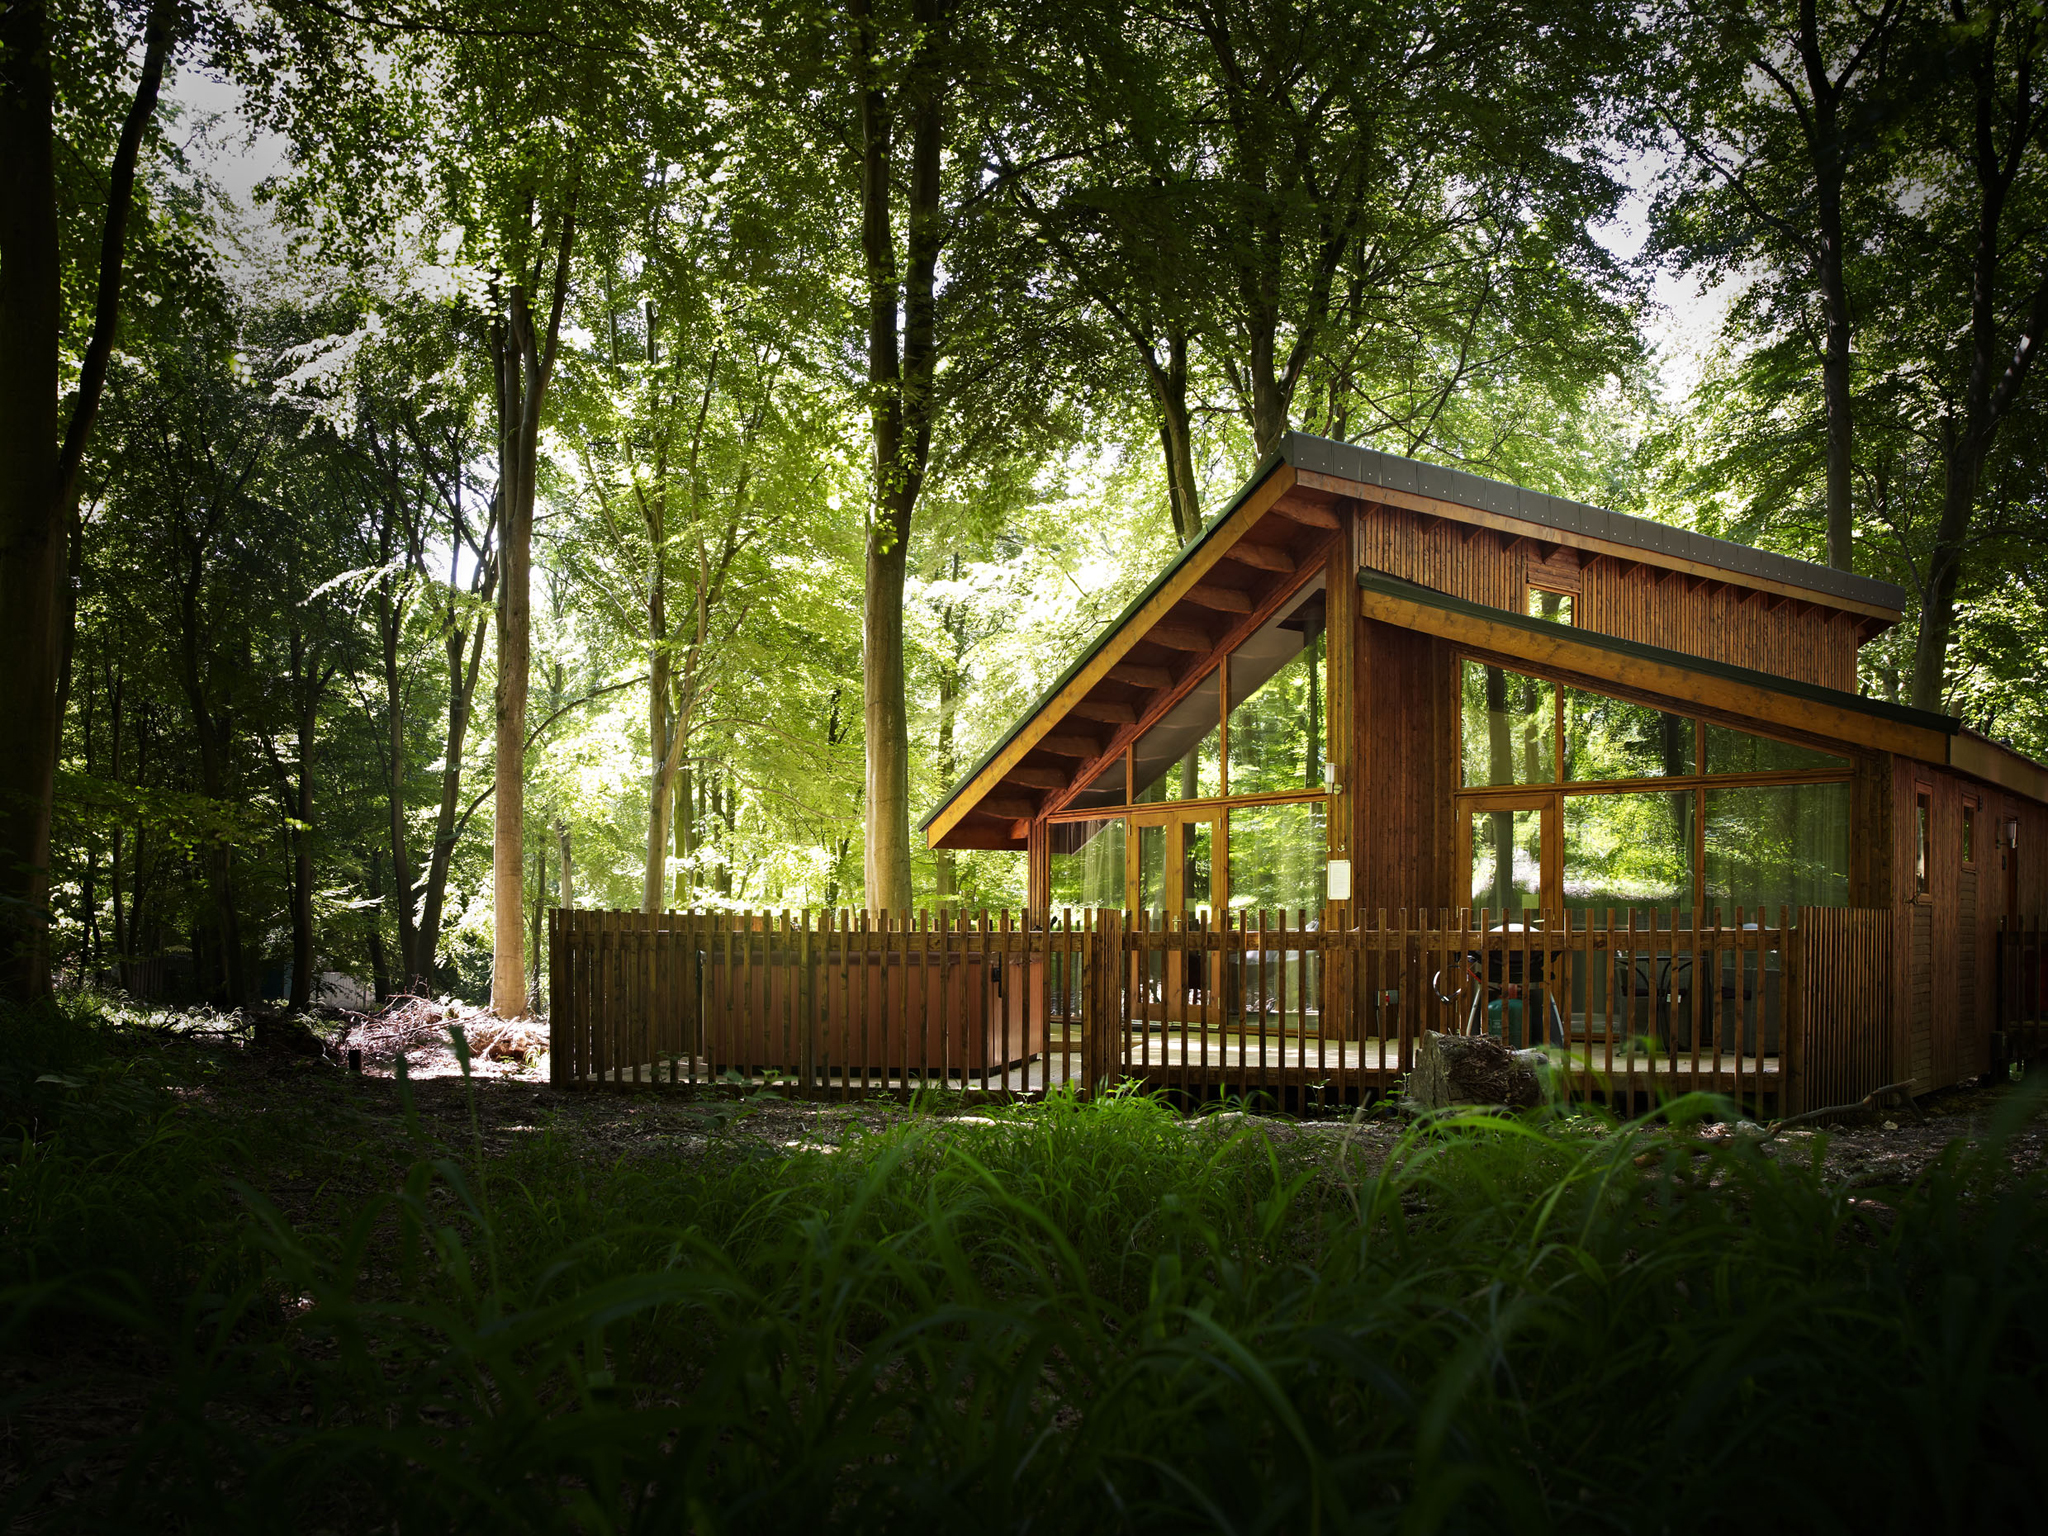 Win a romantic stay for two in a hideaway forest cabin